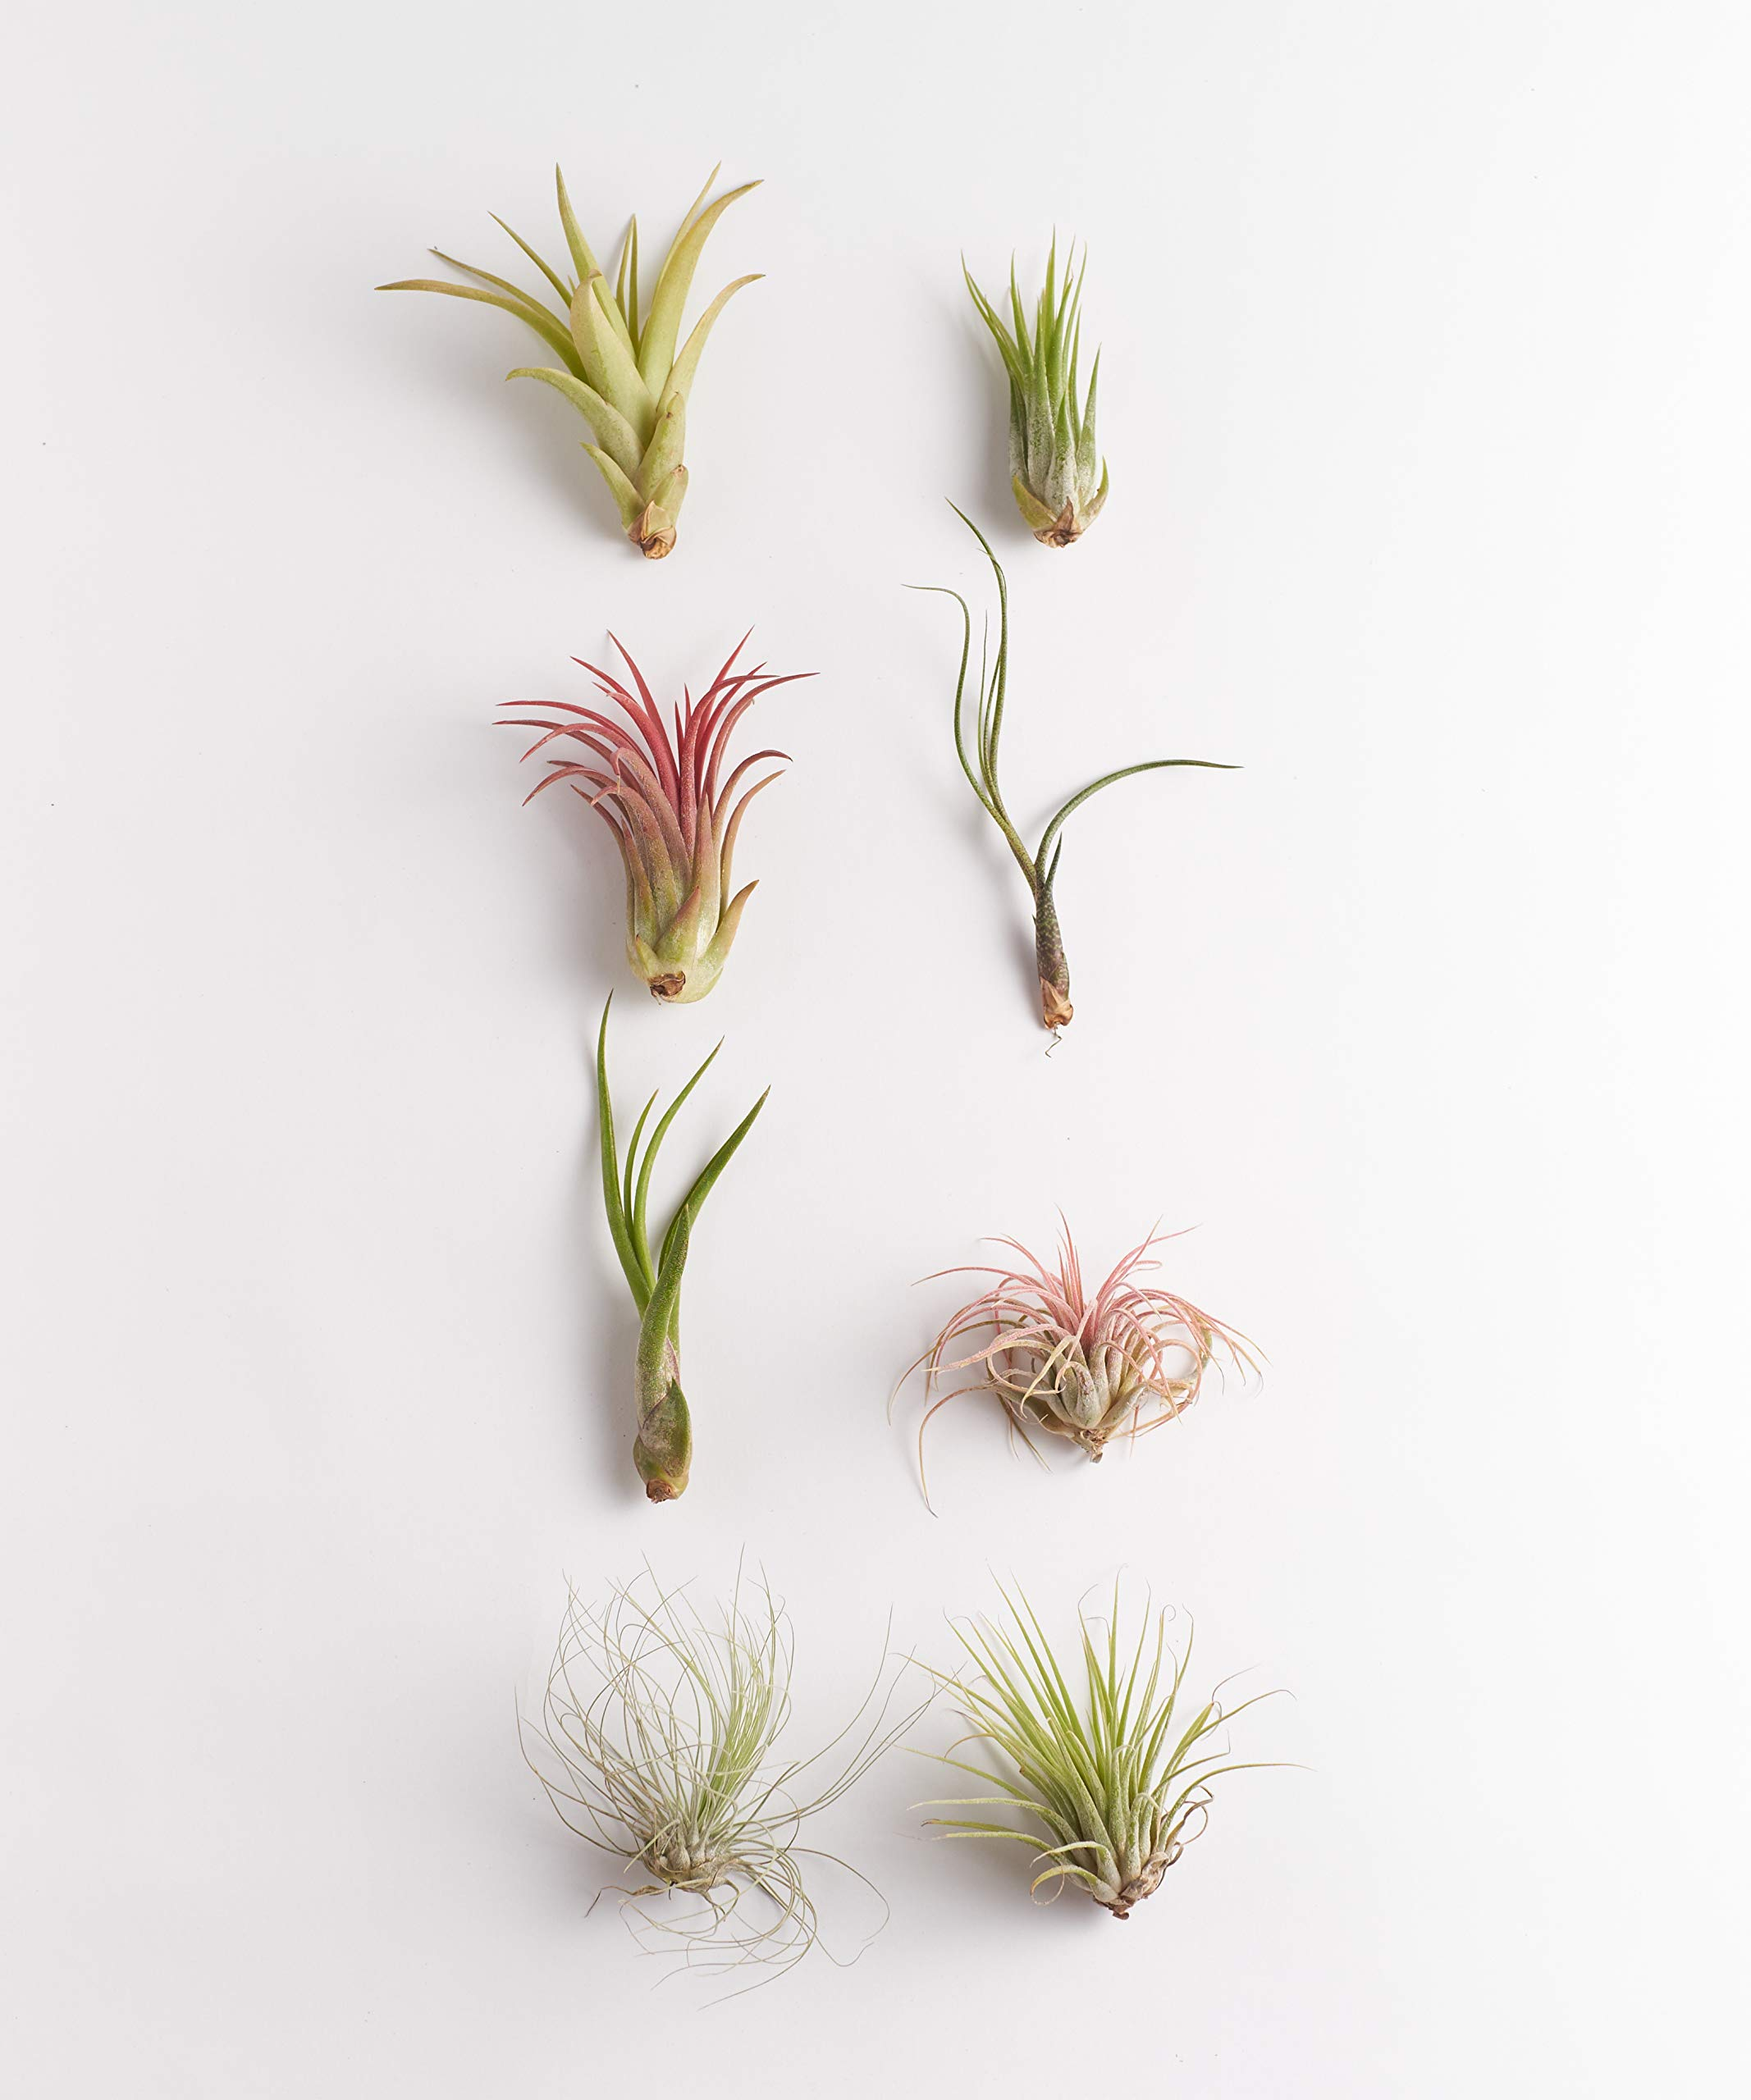 Shop Succulents   Assorted Collection of Live Air Plants, Hand Selected Variety Pack of Air Succulents   Collection of 8 by Shop Succulents